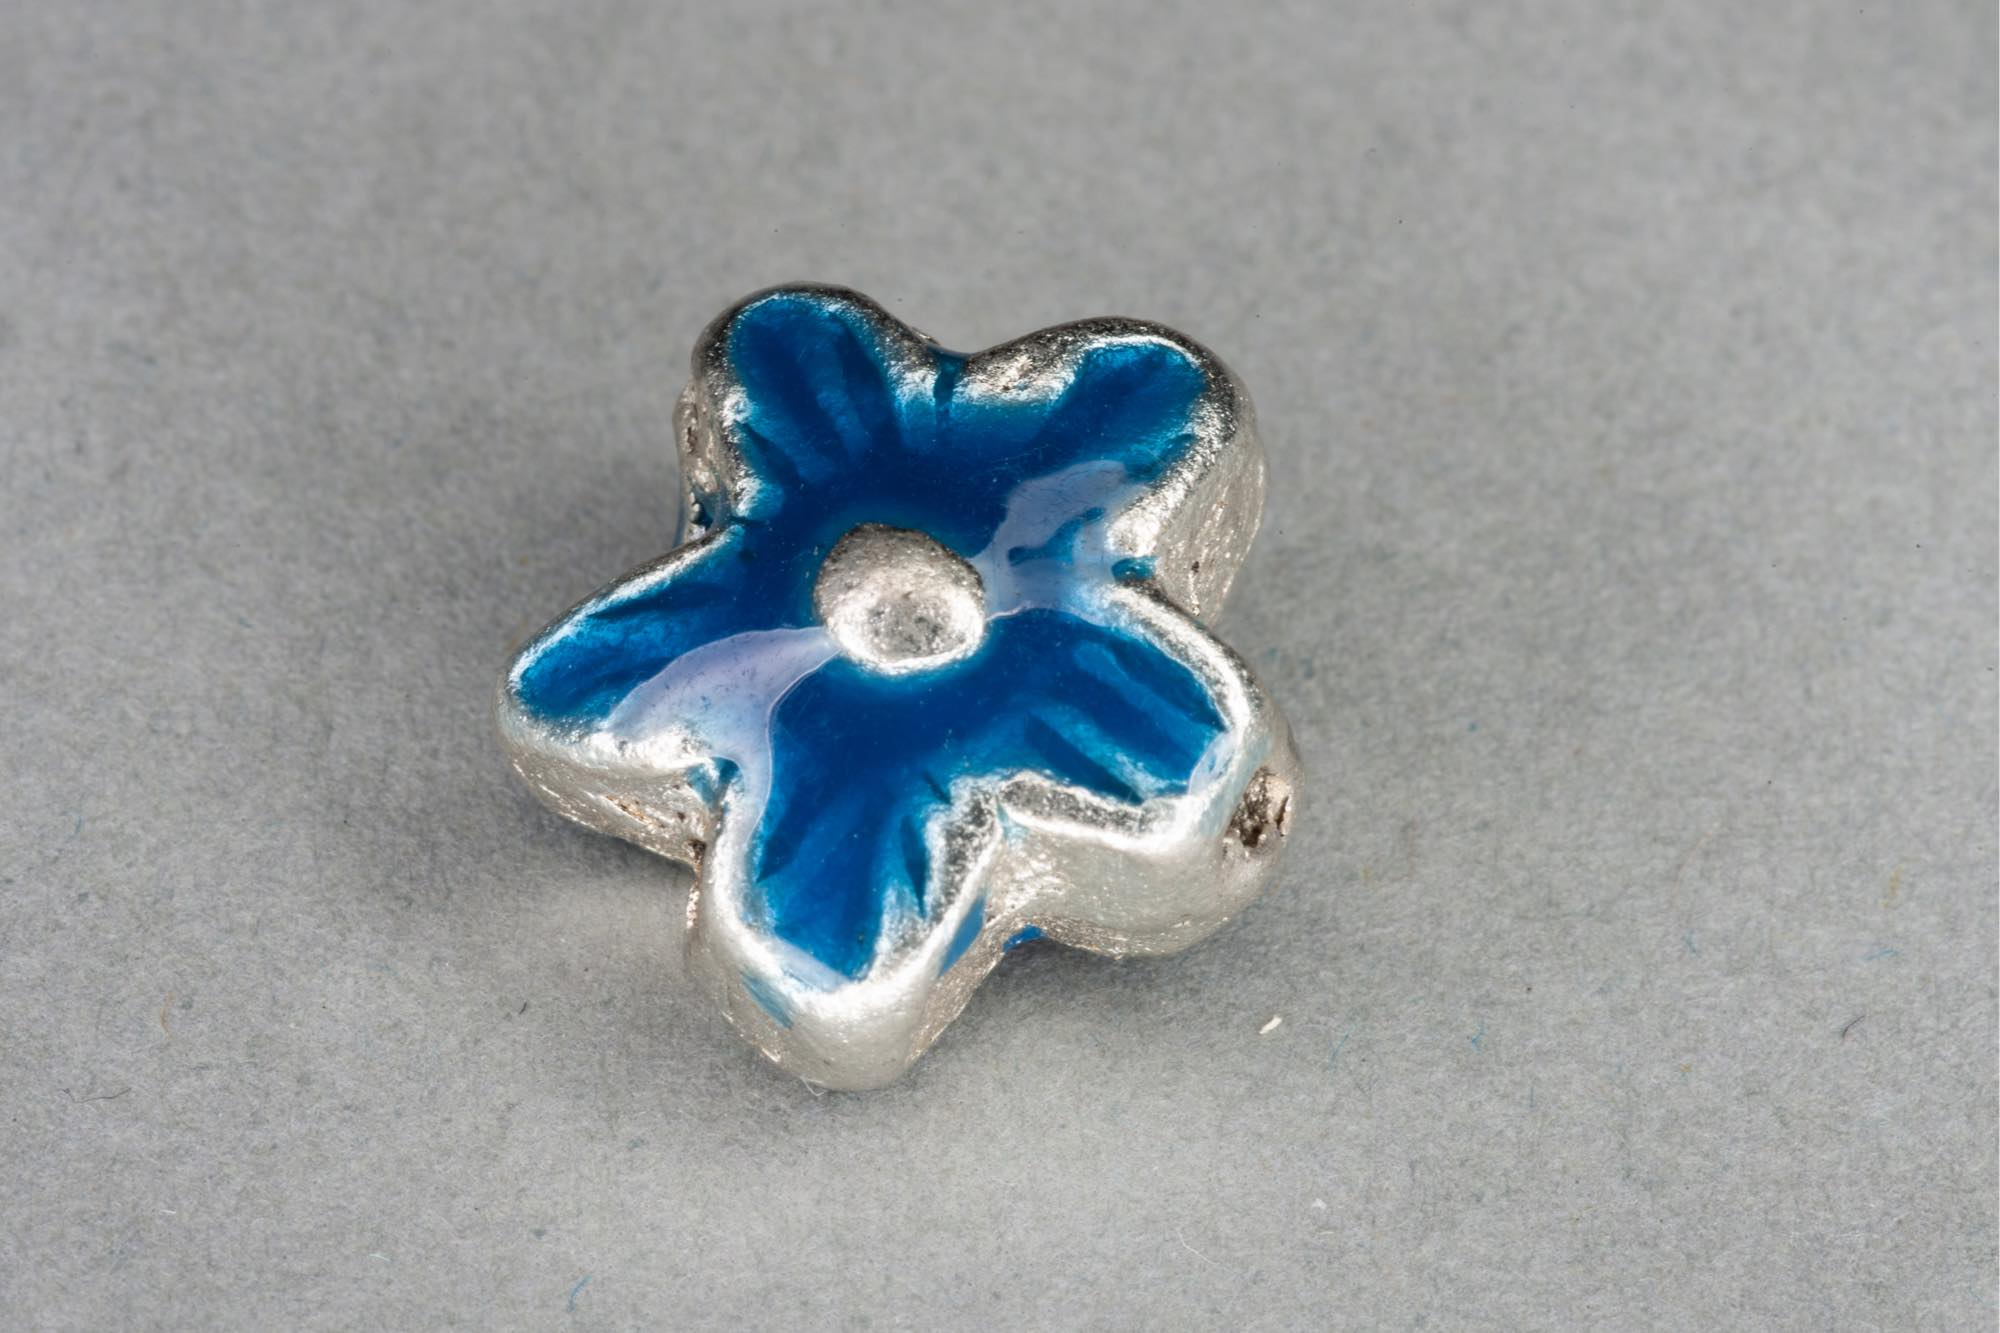 Silver Plated Metal Flower Bead With Navy Enamel Effect 14x7mm, 1.2mm hole